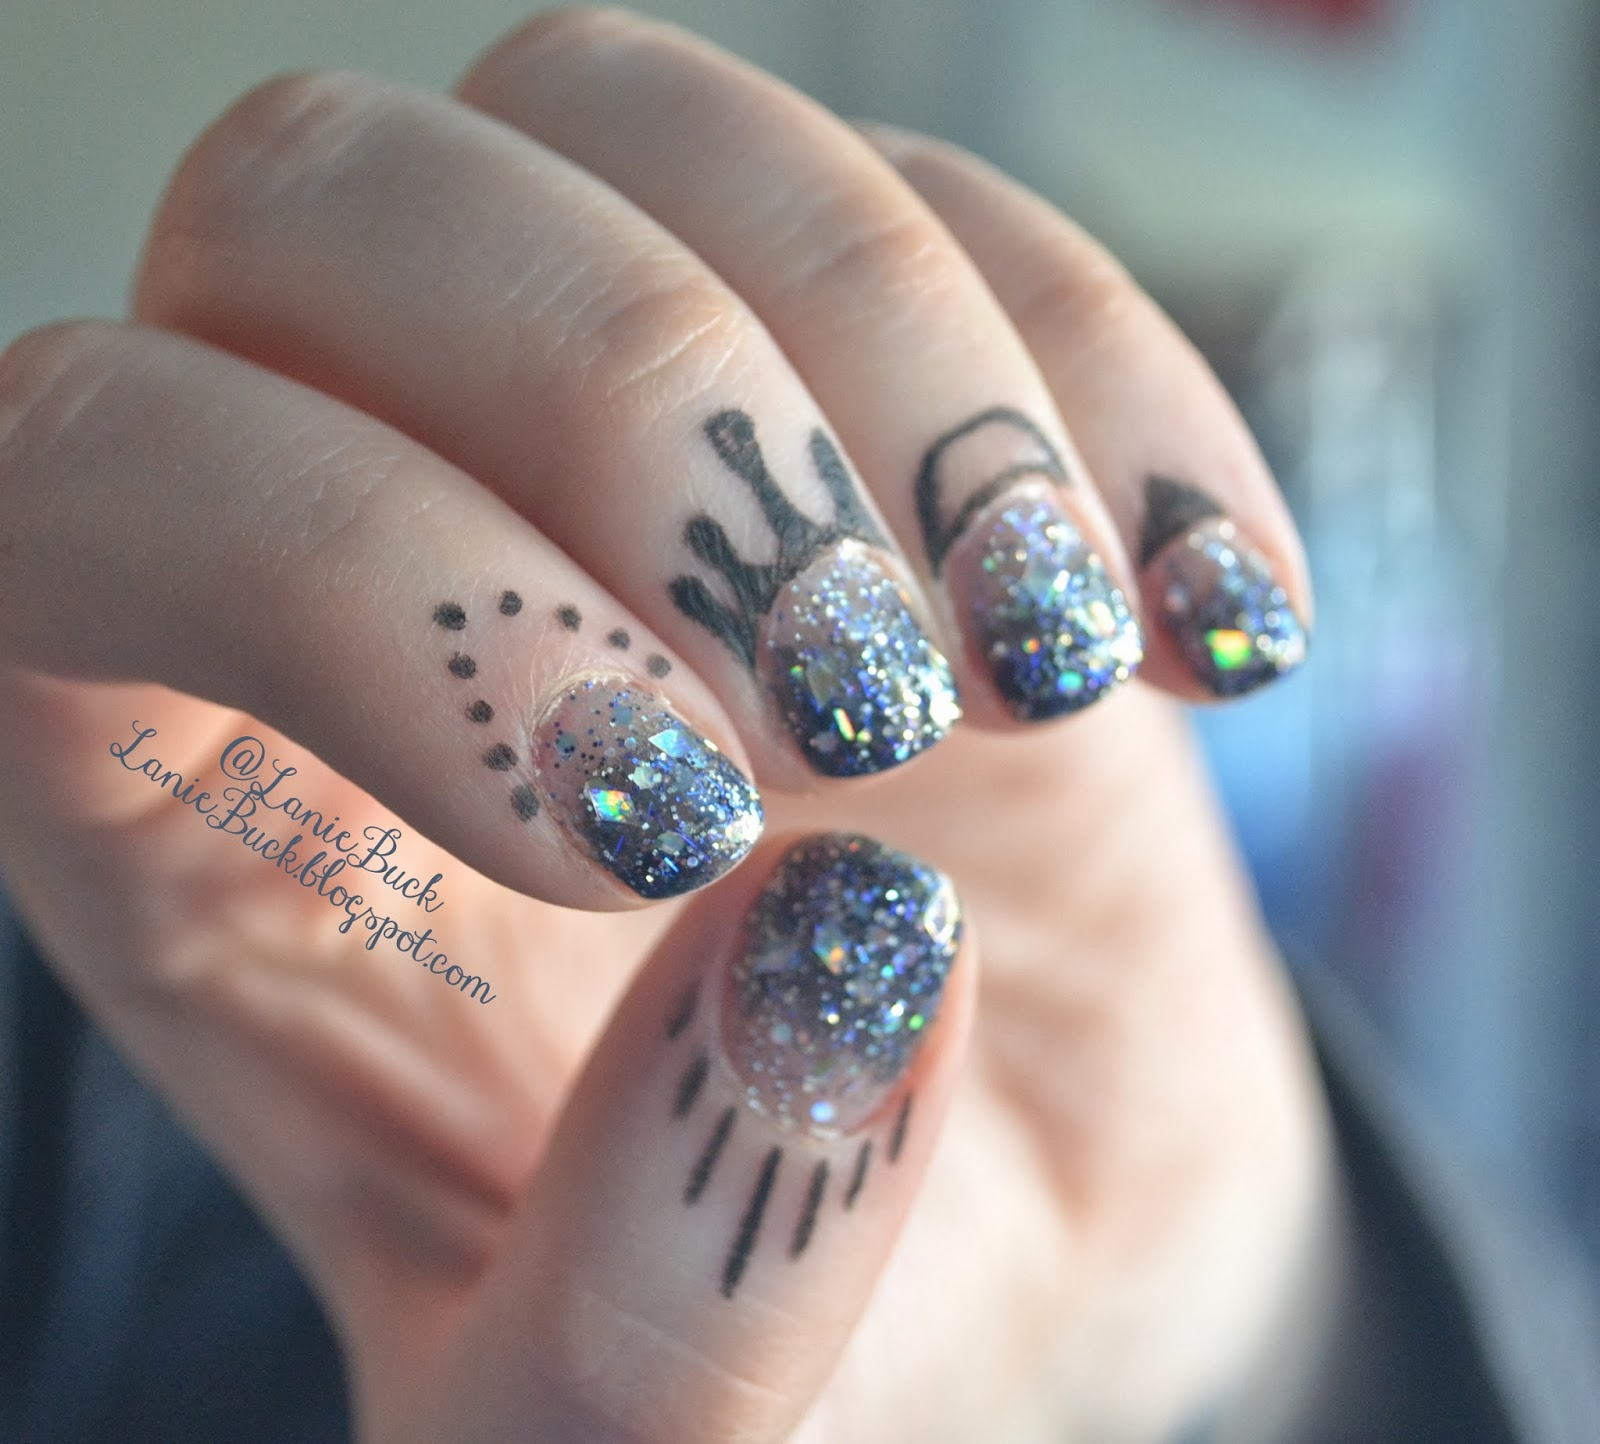 DIY Beauty- Cuticle Tattoos with no Transfers!